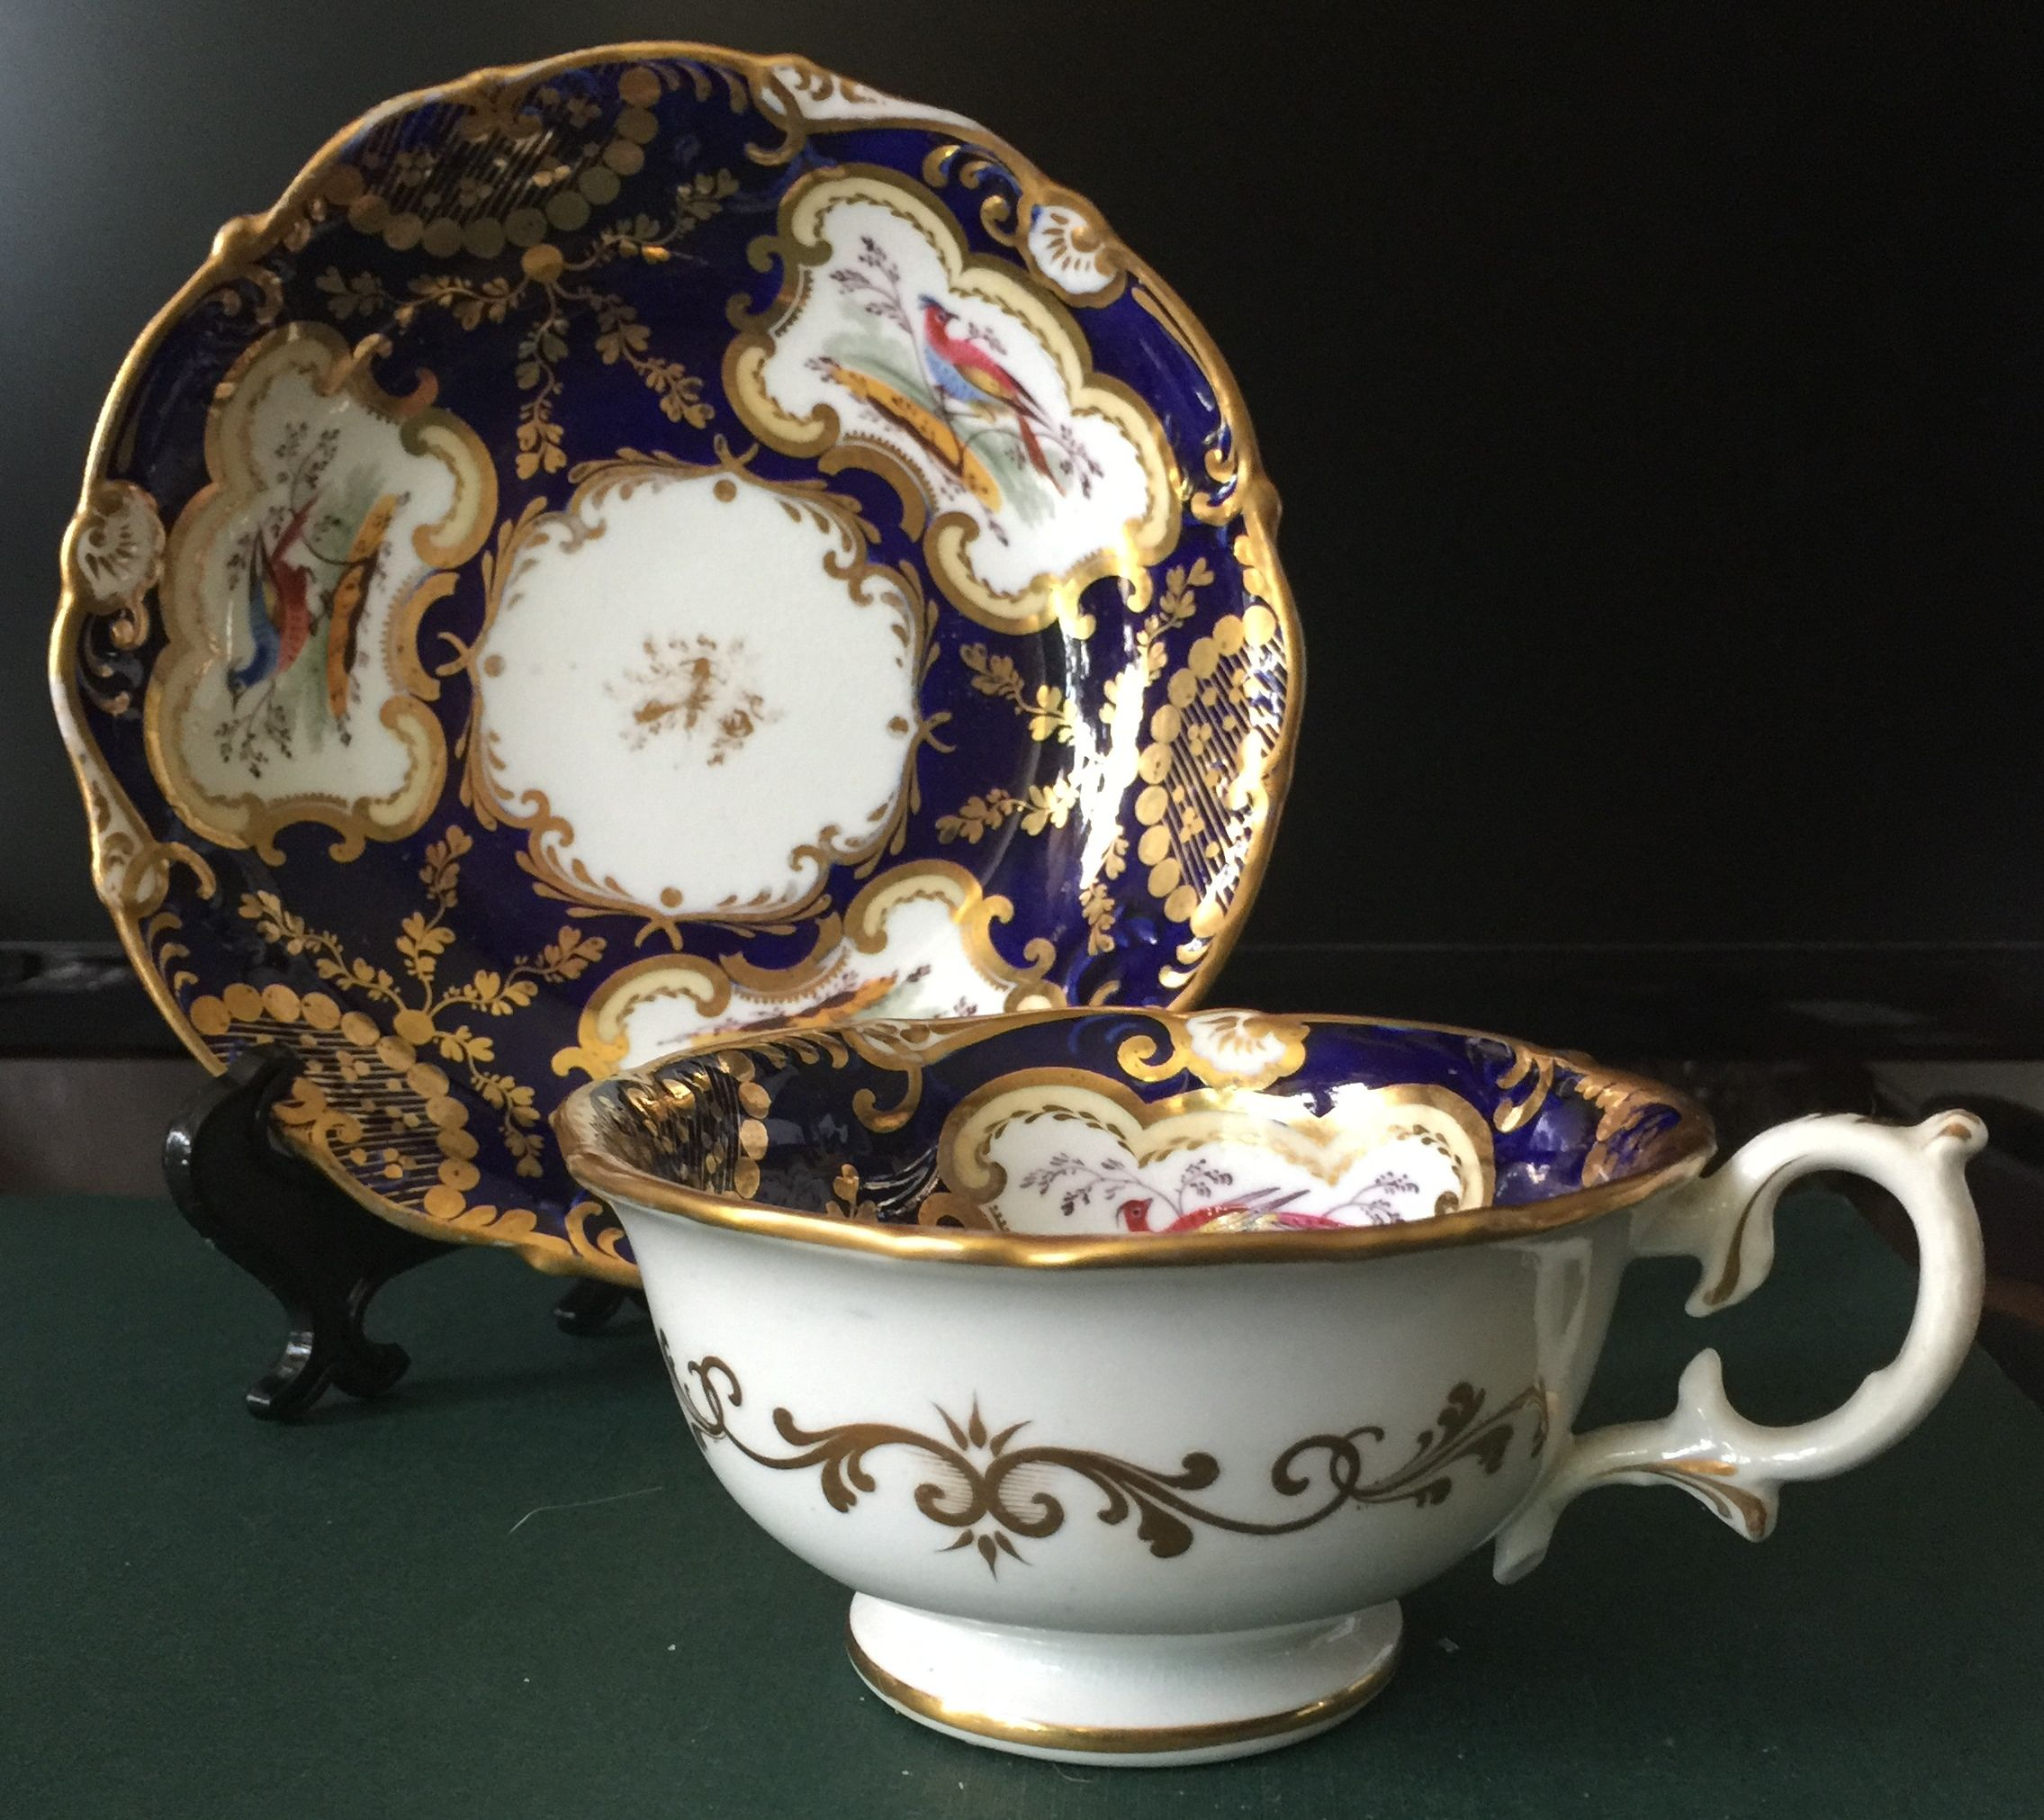 This a pair H. R. Daniel pattern number 6011 teacup and